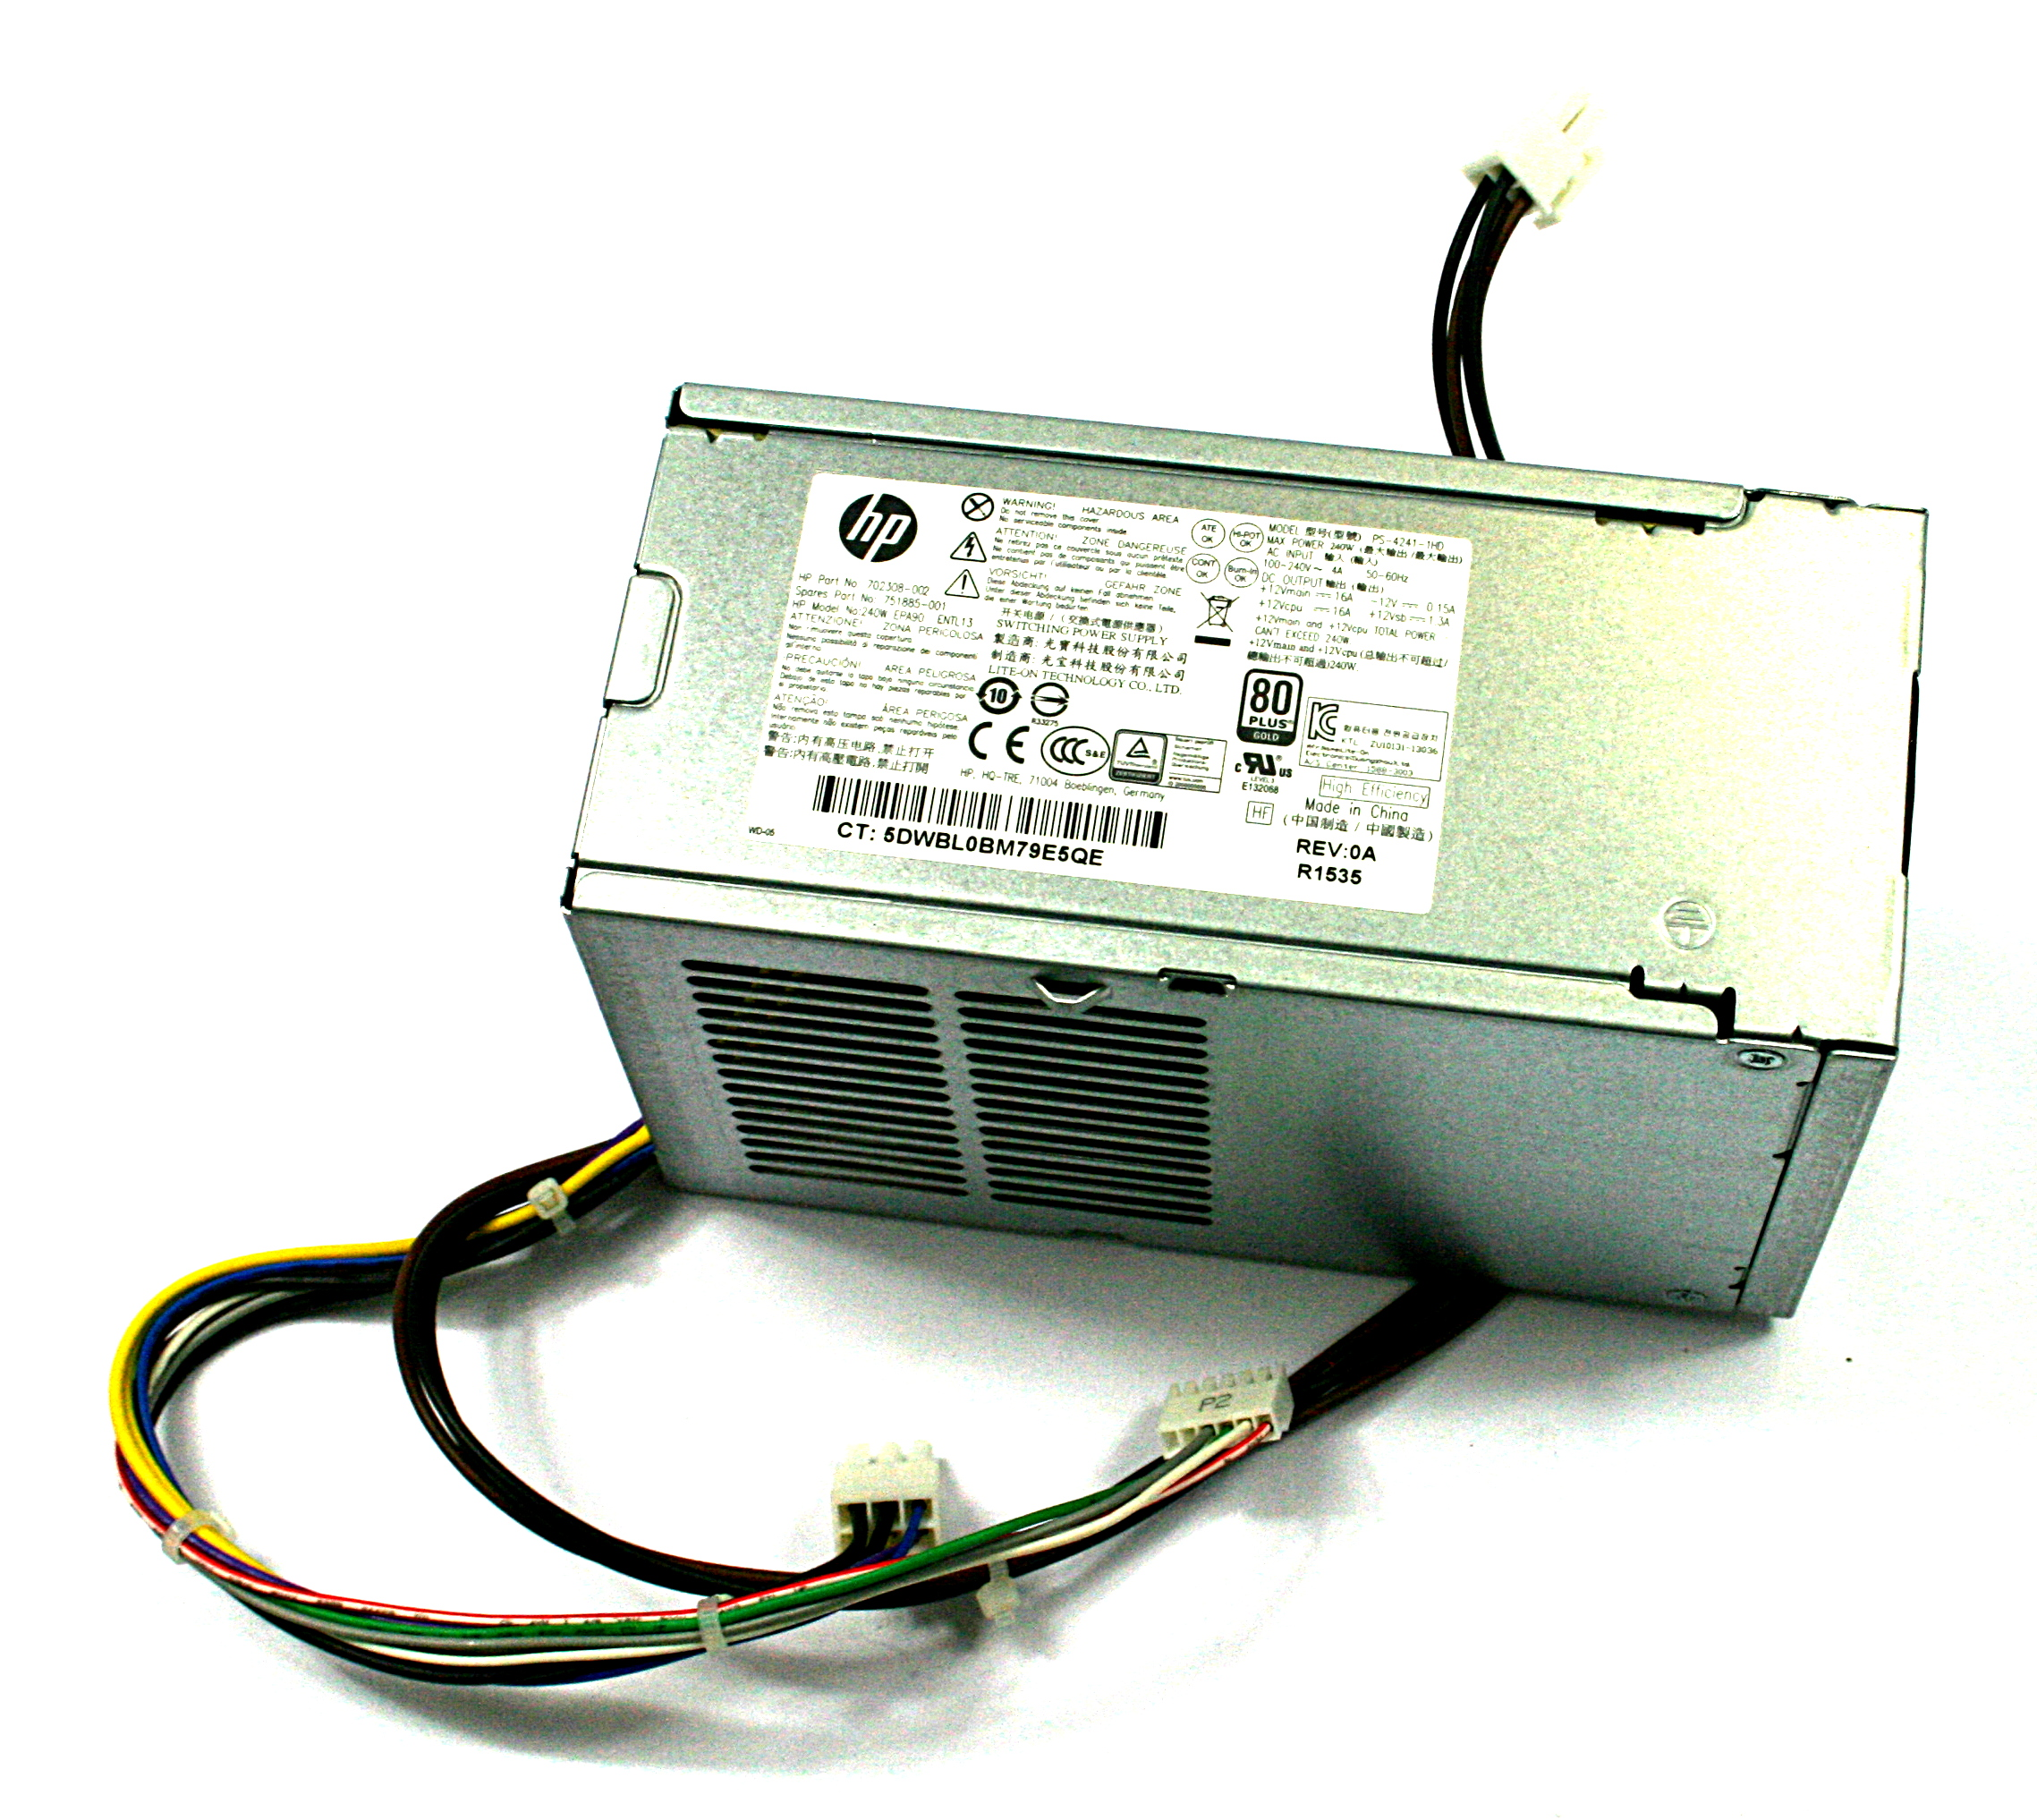 HP 702456-001 240W SFF 6-Pin Power Supply 702308-001 - LiteOn PS-4241-1HB